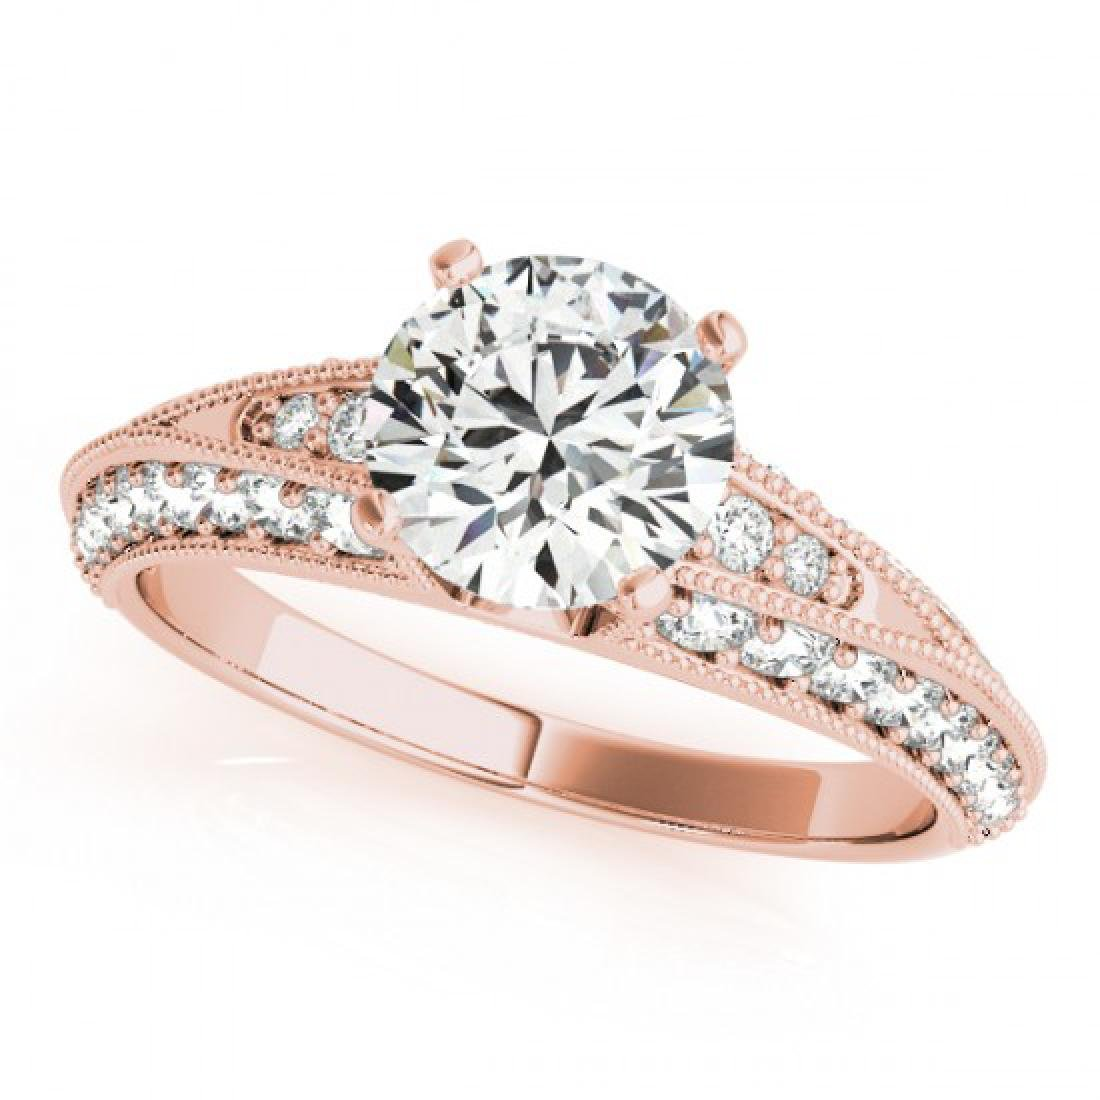 1.08 CTW Certified VS/SI Diamond Solitaire Antique Ring